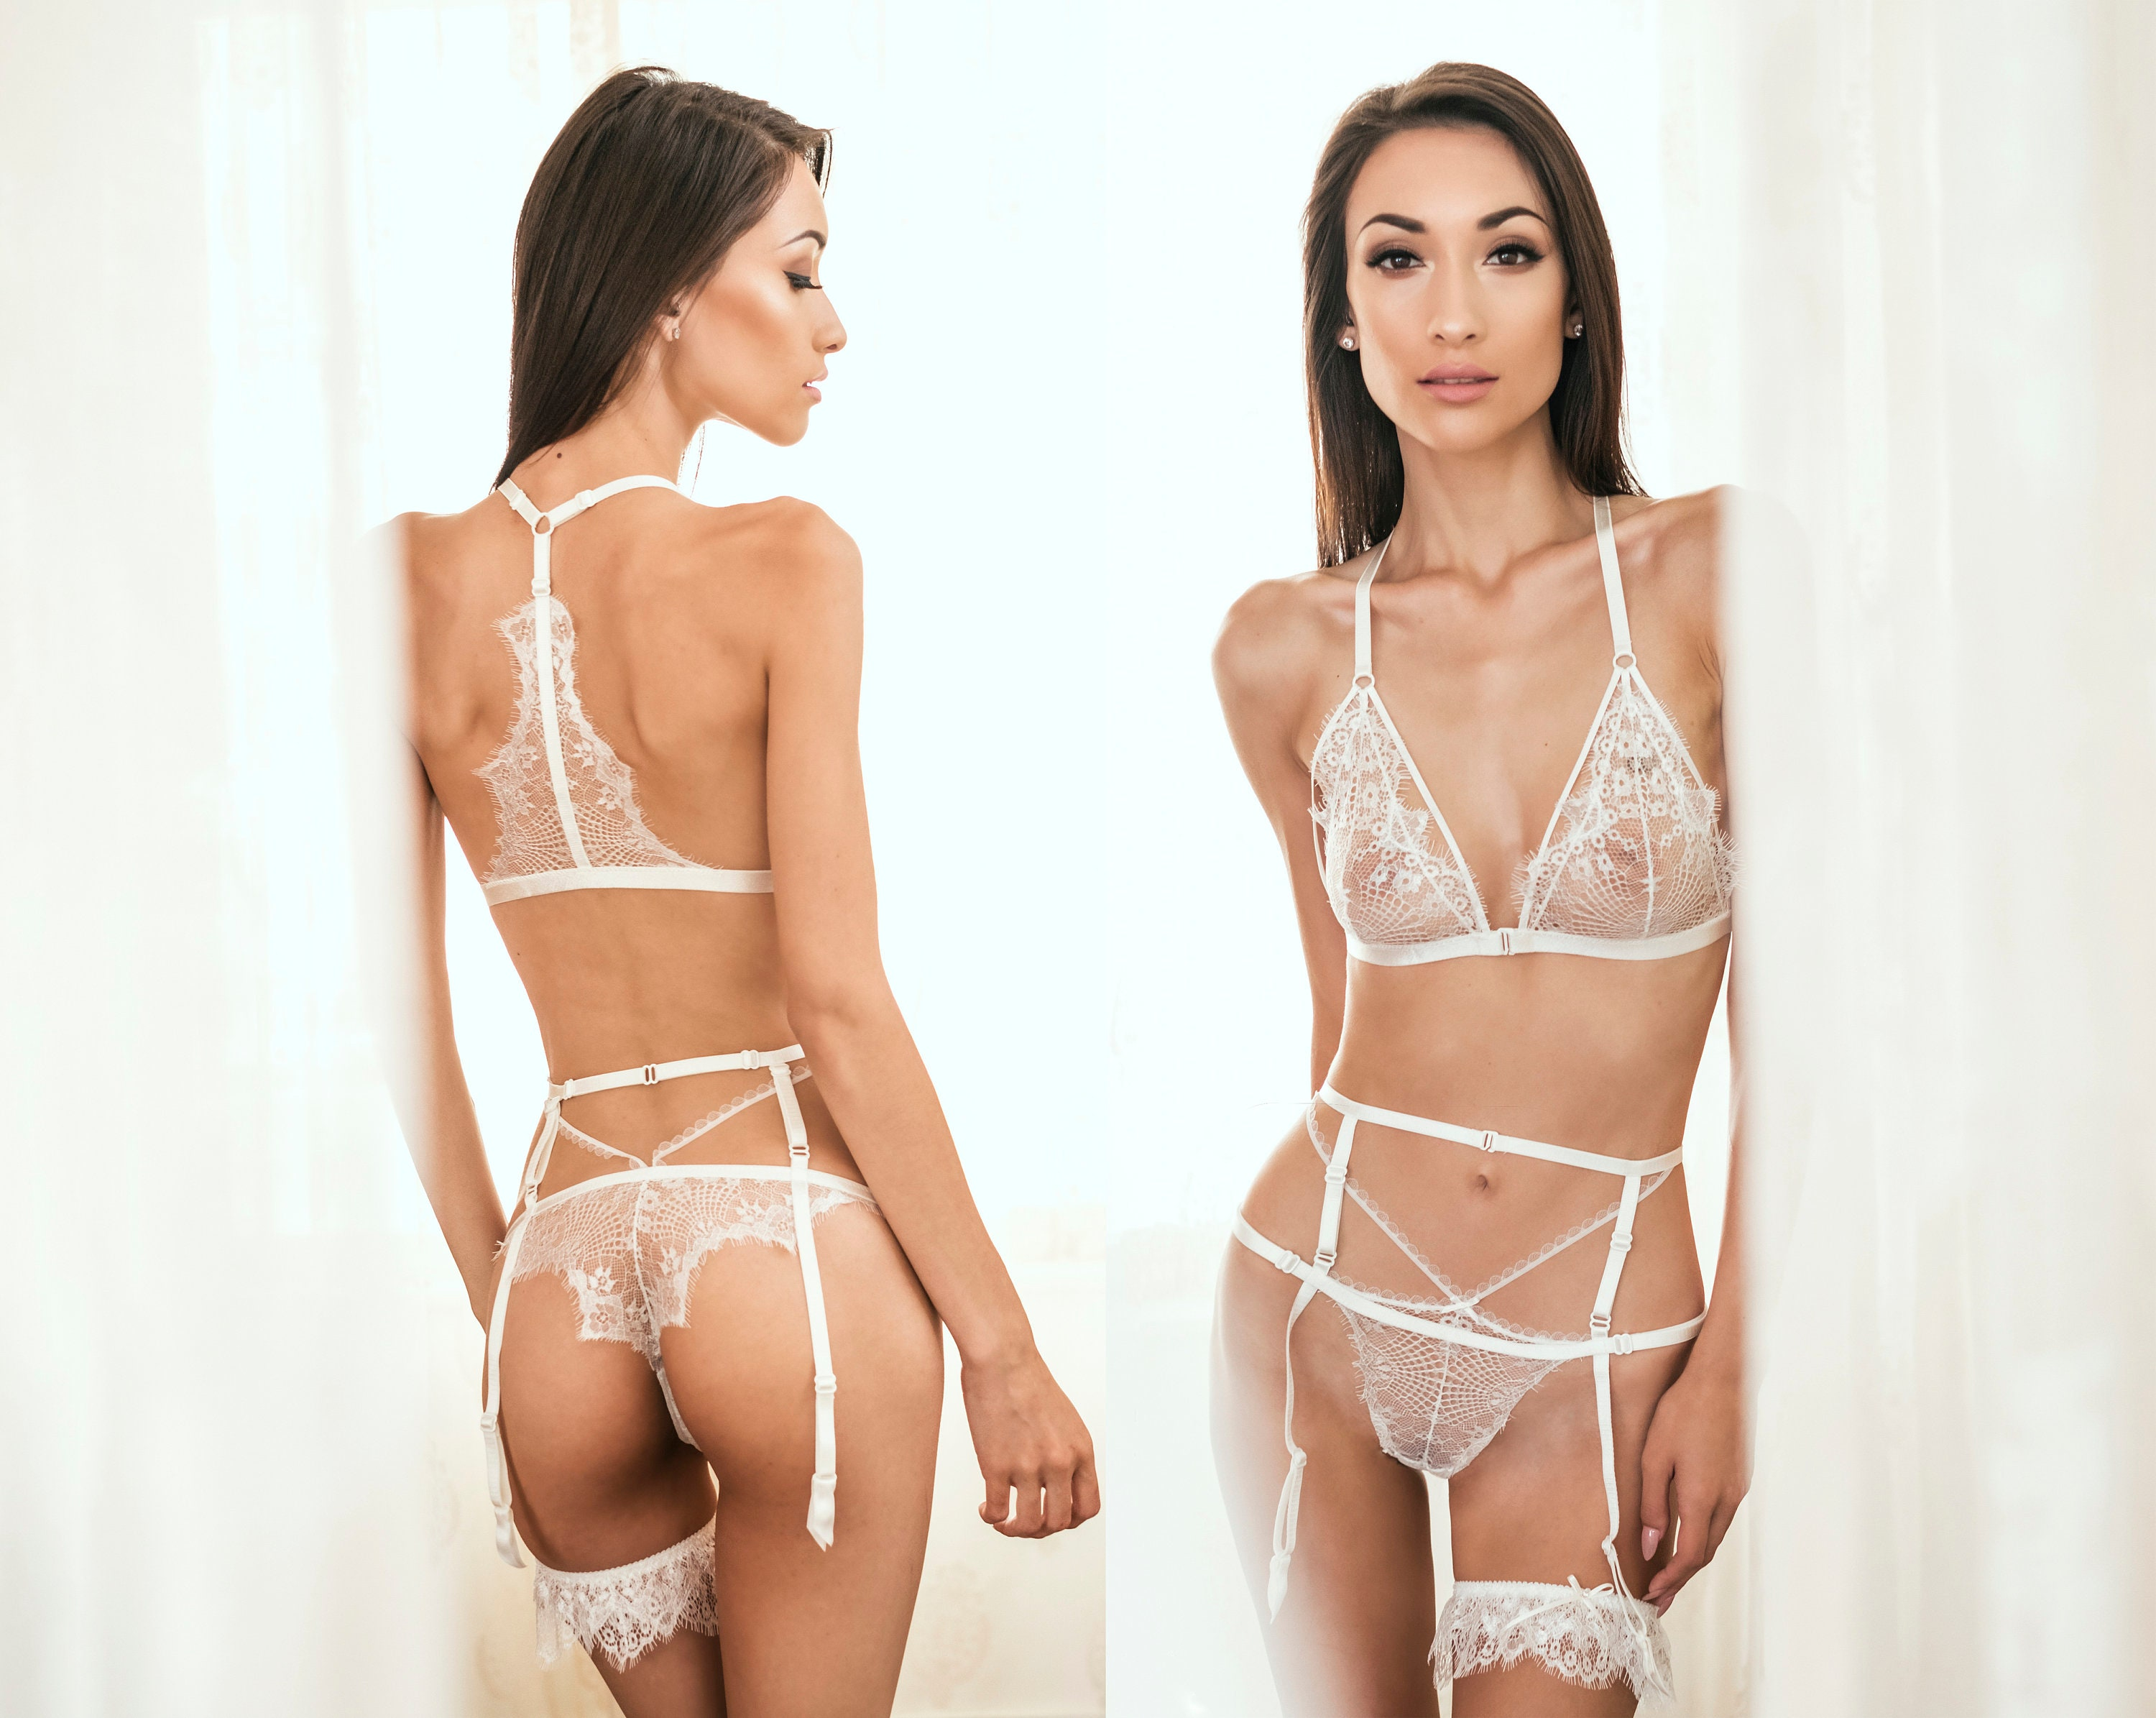 Lori Wedding Sheer Honeymoon Through See Garters LingerieSexy Bridal White m8NwvnOy0P